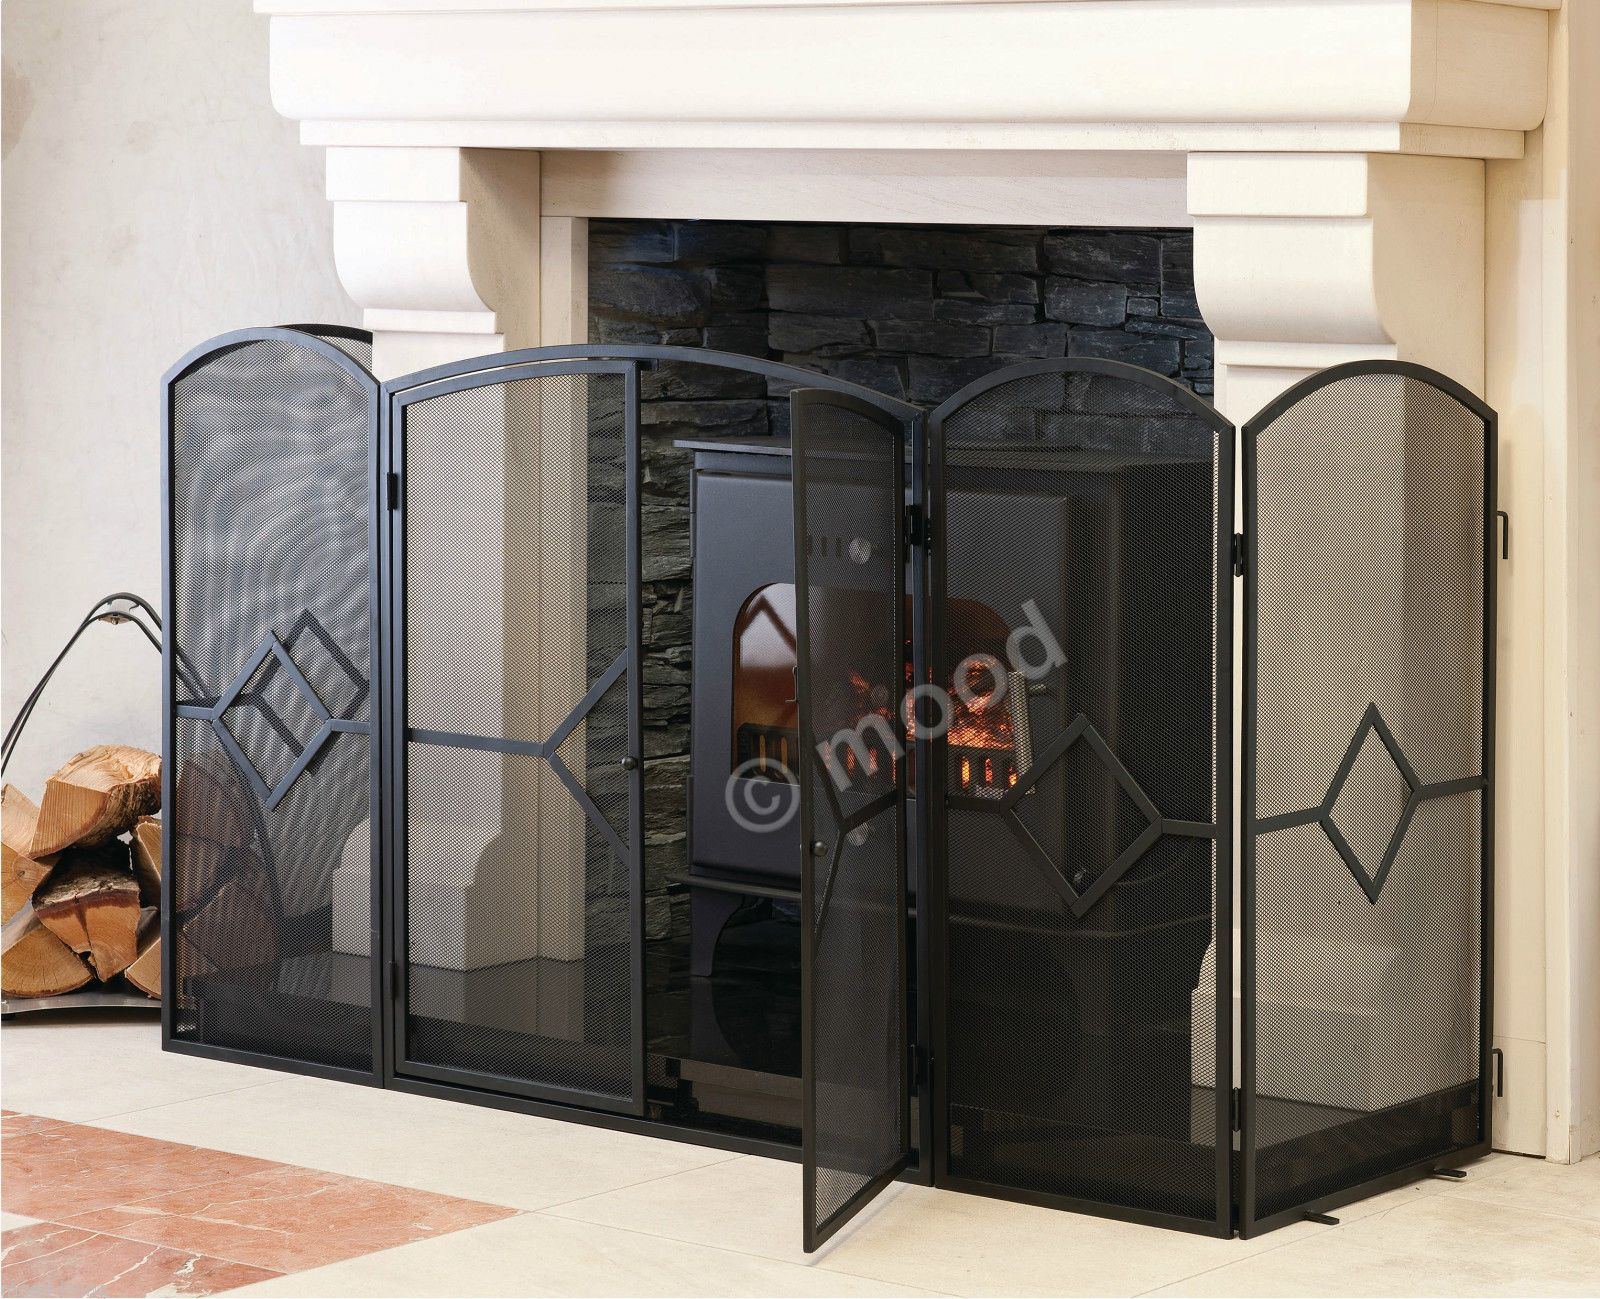 furniture screen at on fresh amazing top fireplace new interior home guard design gallery spark simple architecture